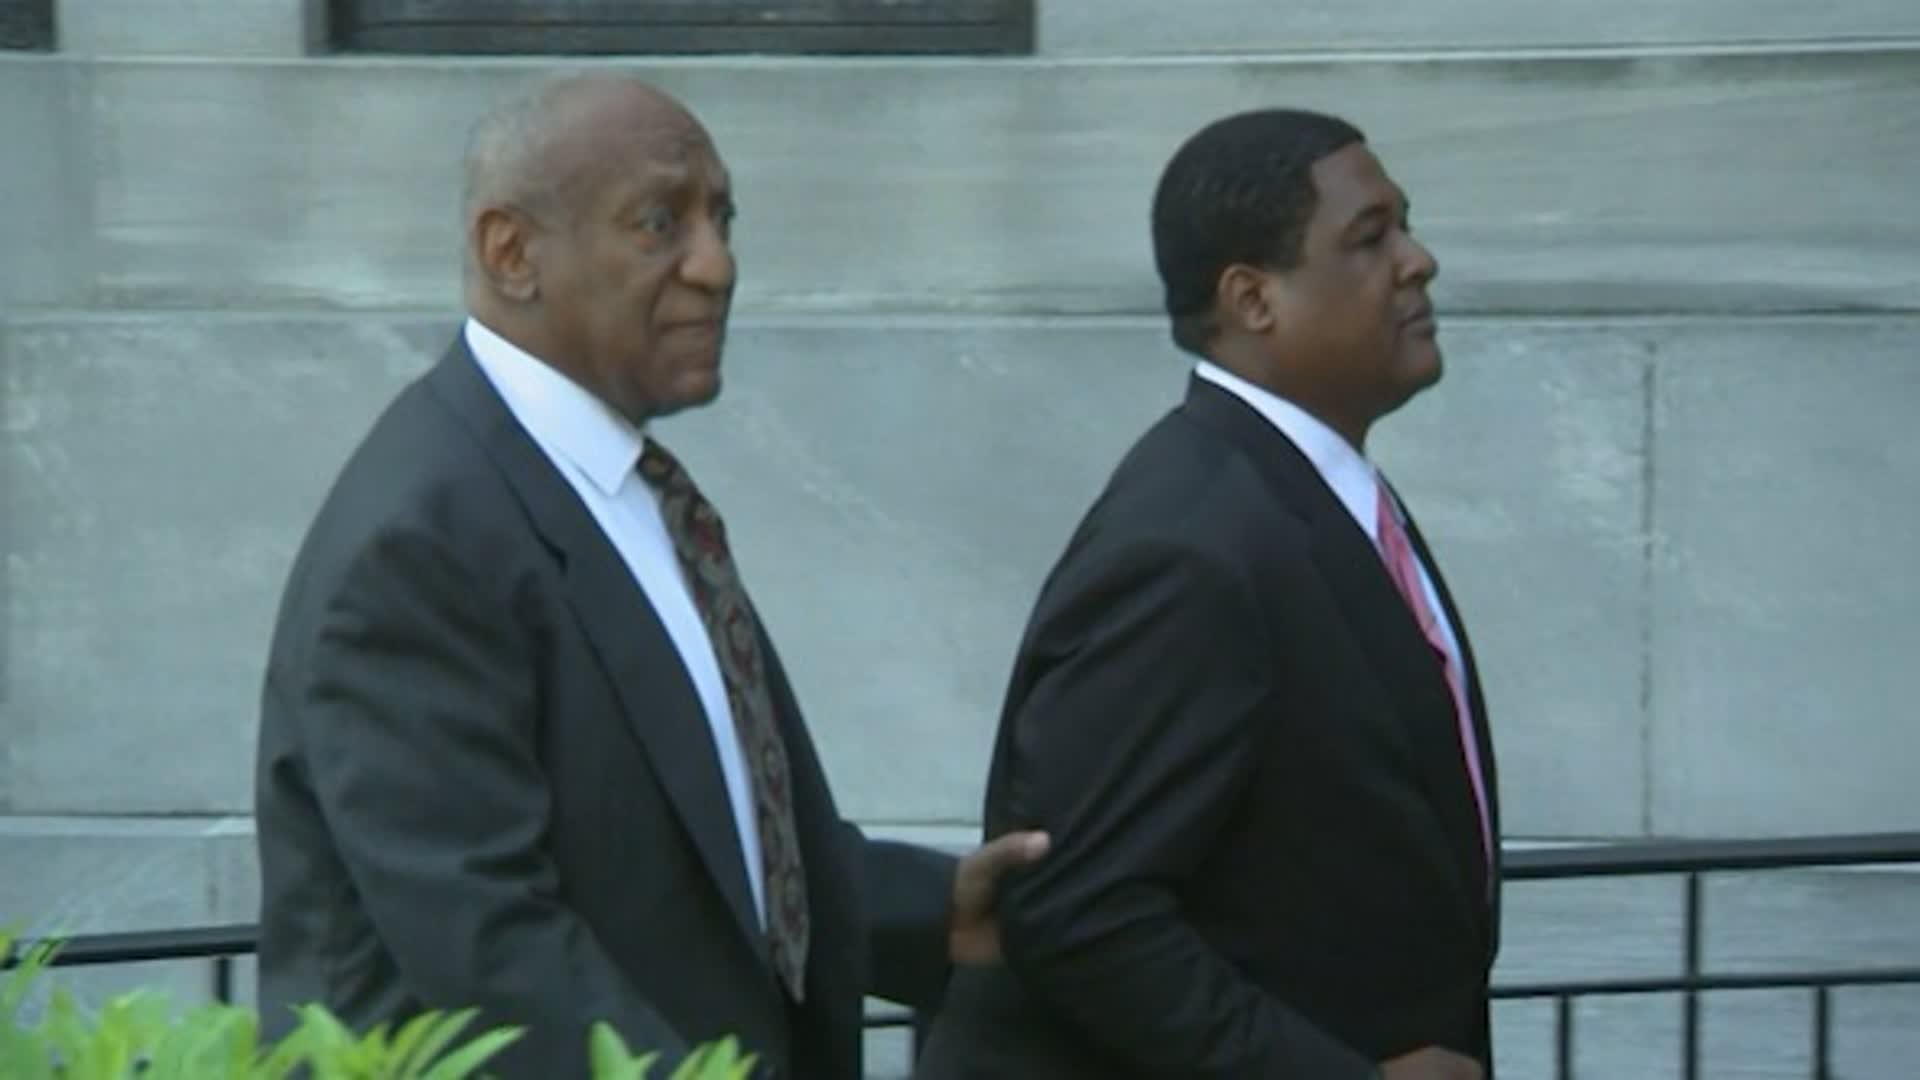 Raw: Cosby Arrives At Court for Sex-Assault Case